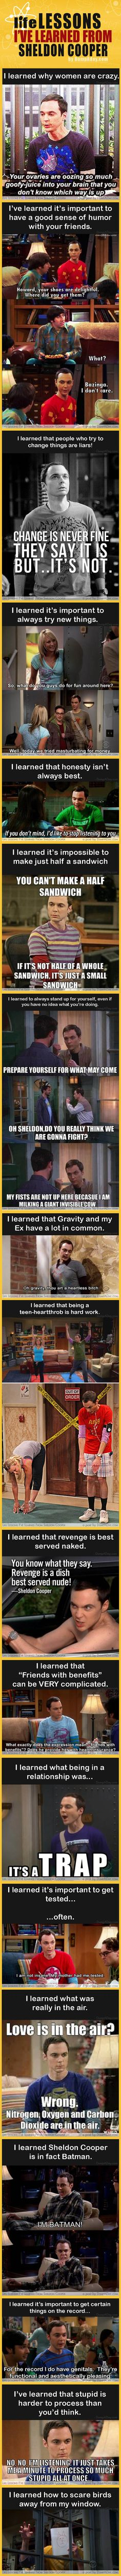 The Life Lessons I Learned From Sheldon Cooper